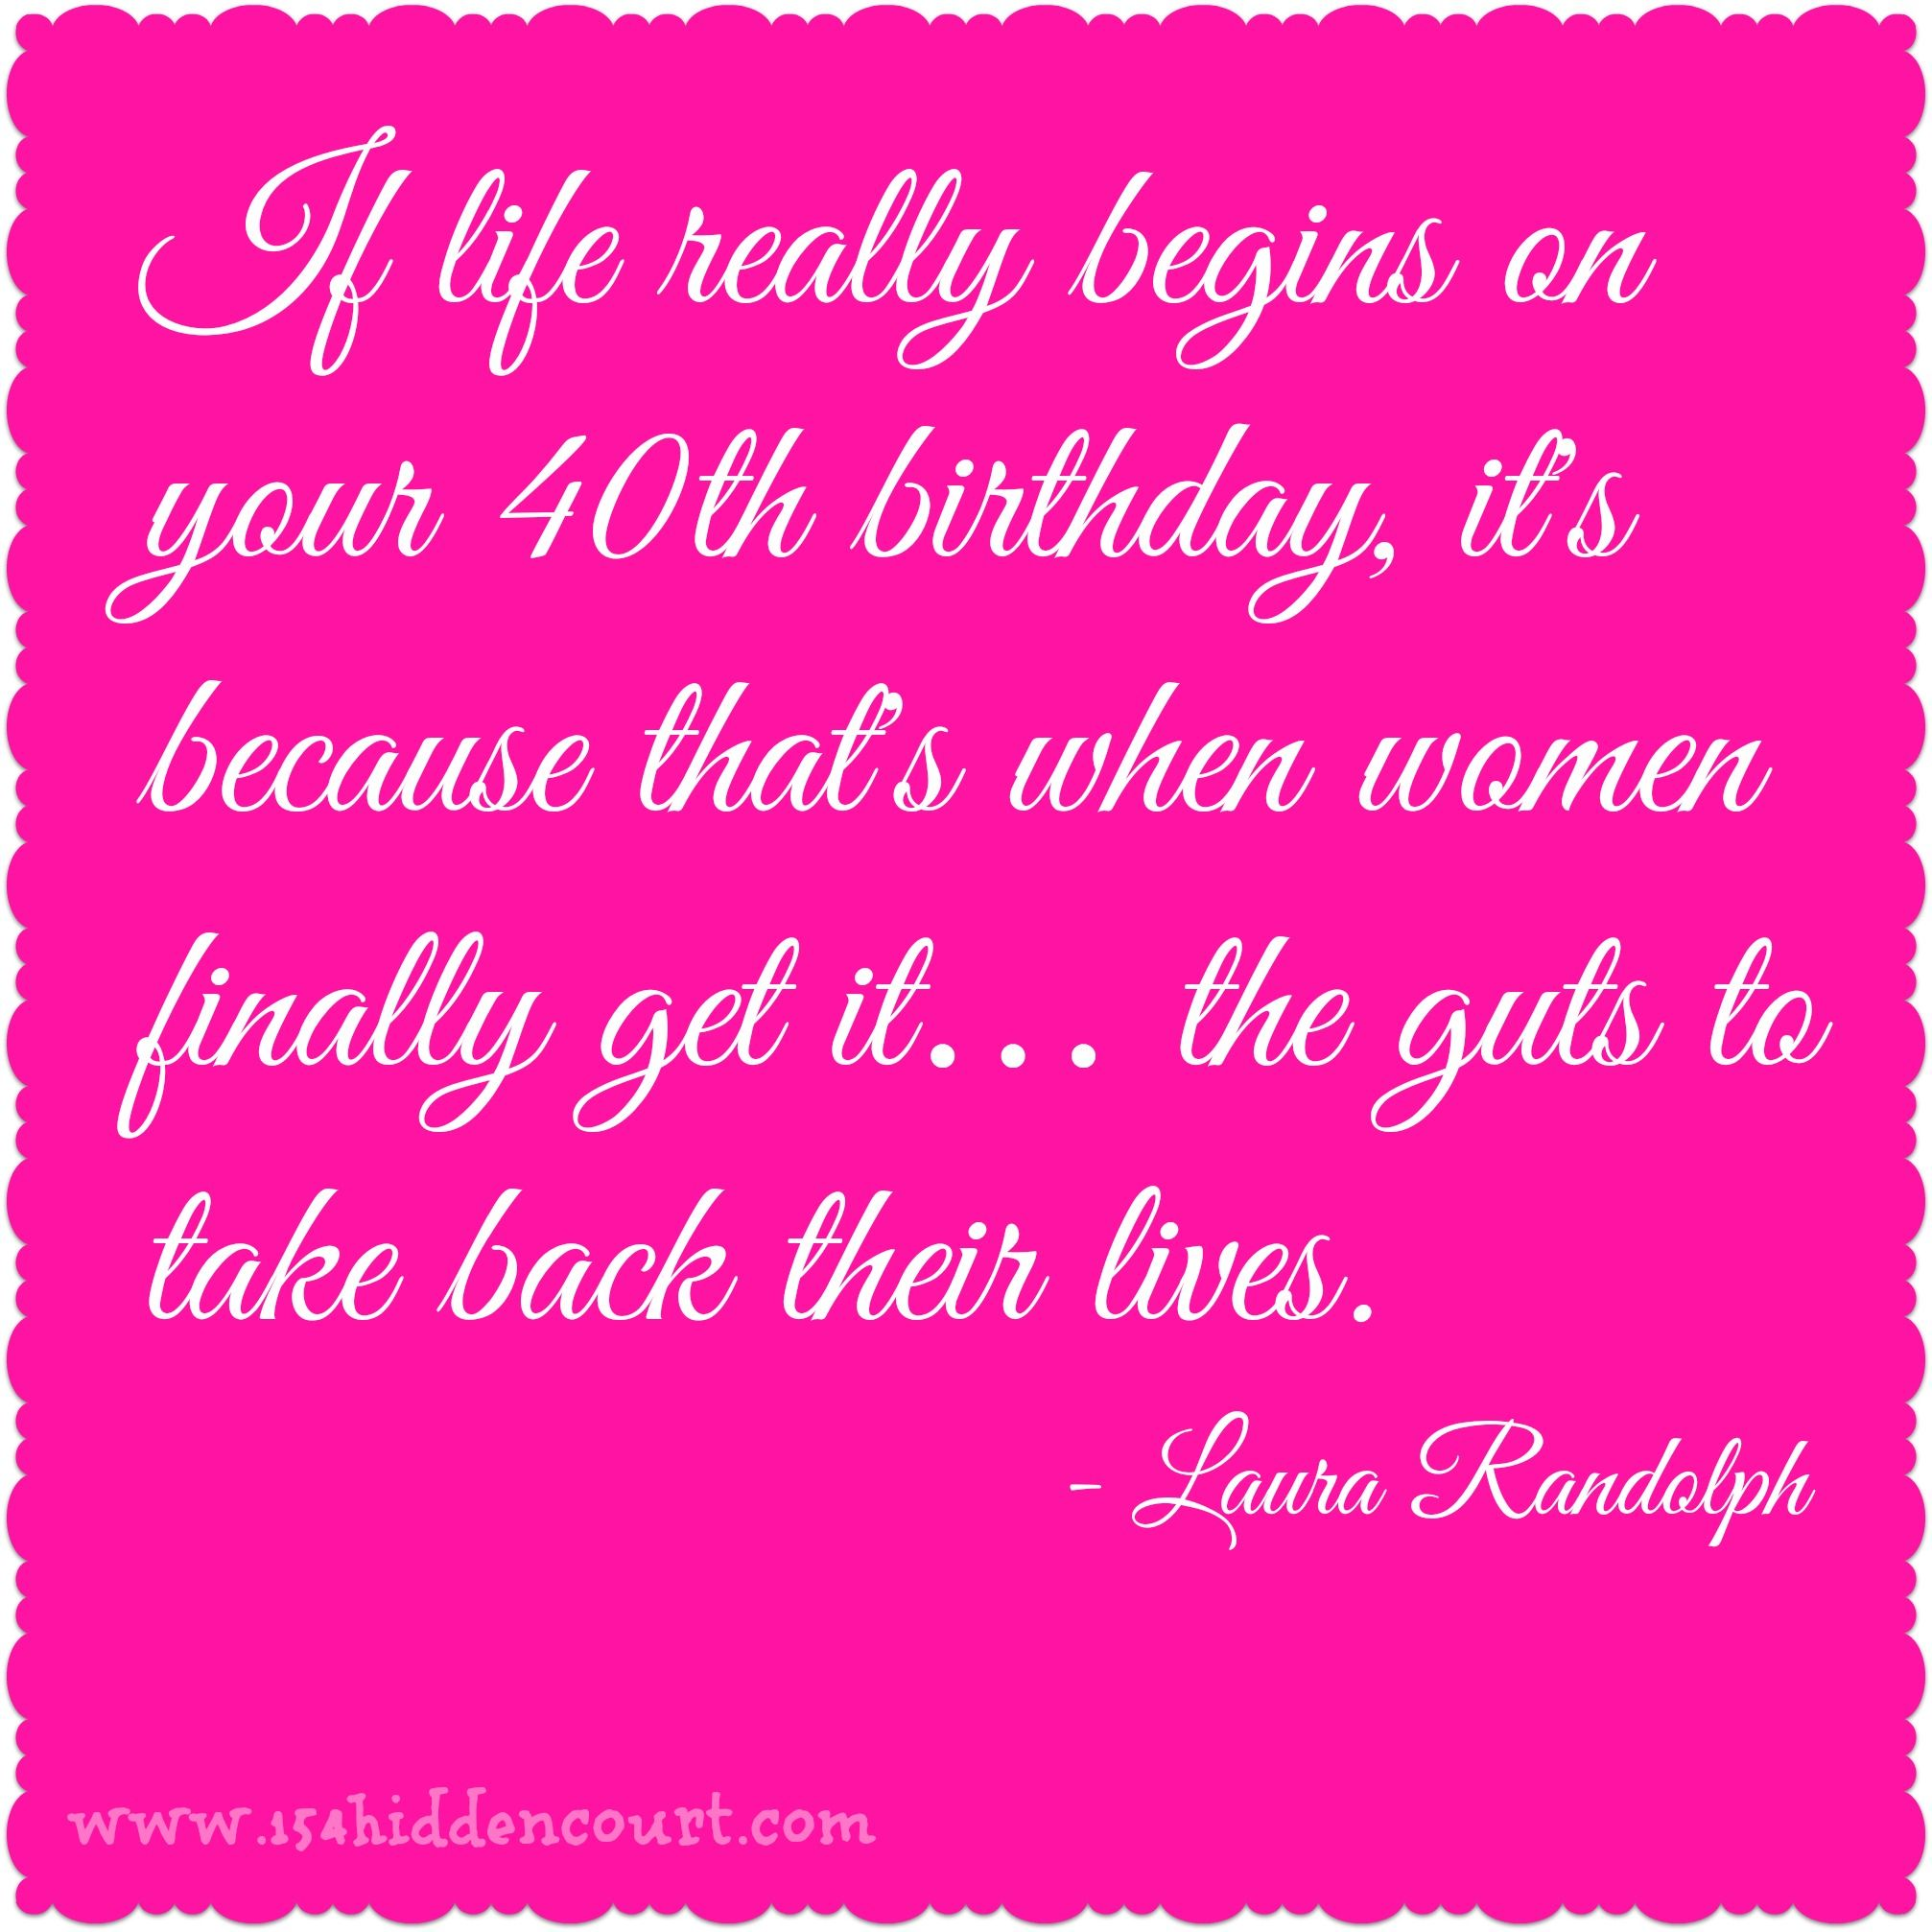 Turning 40 Quotes 40 2014×2014 Pixels  Diy Crafts  Pinterest  Birthdays